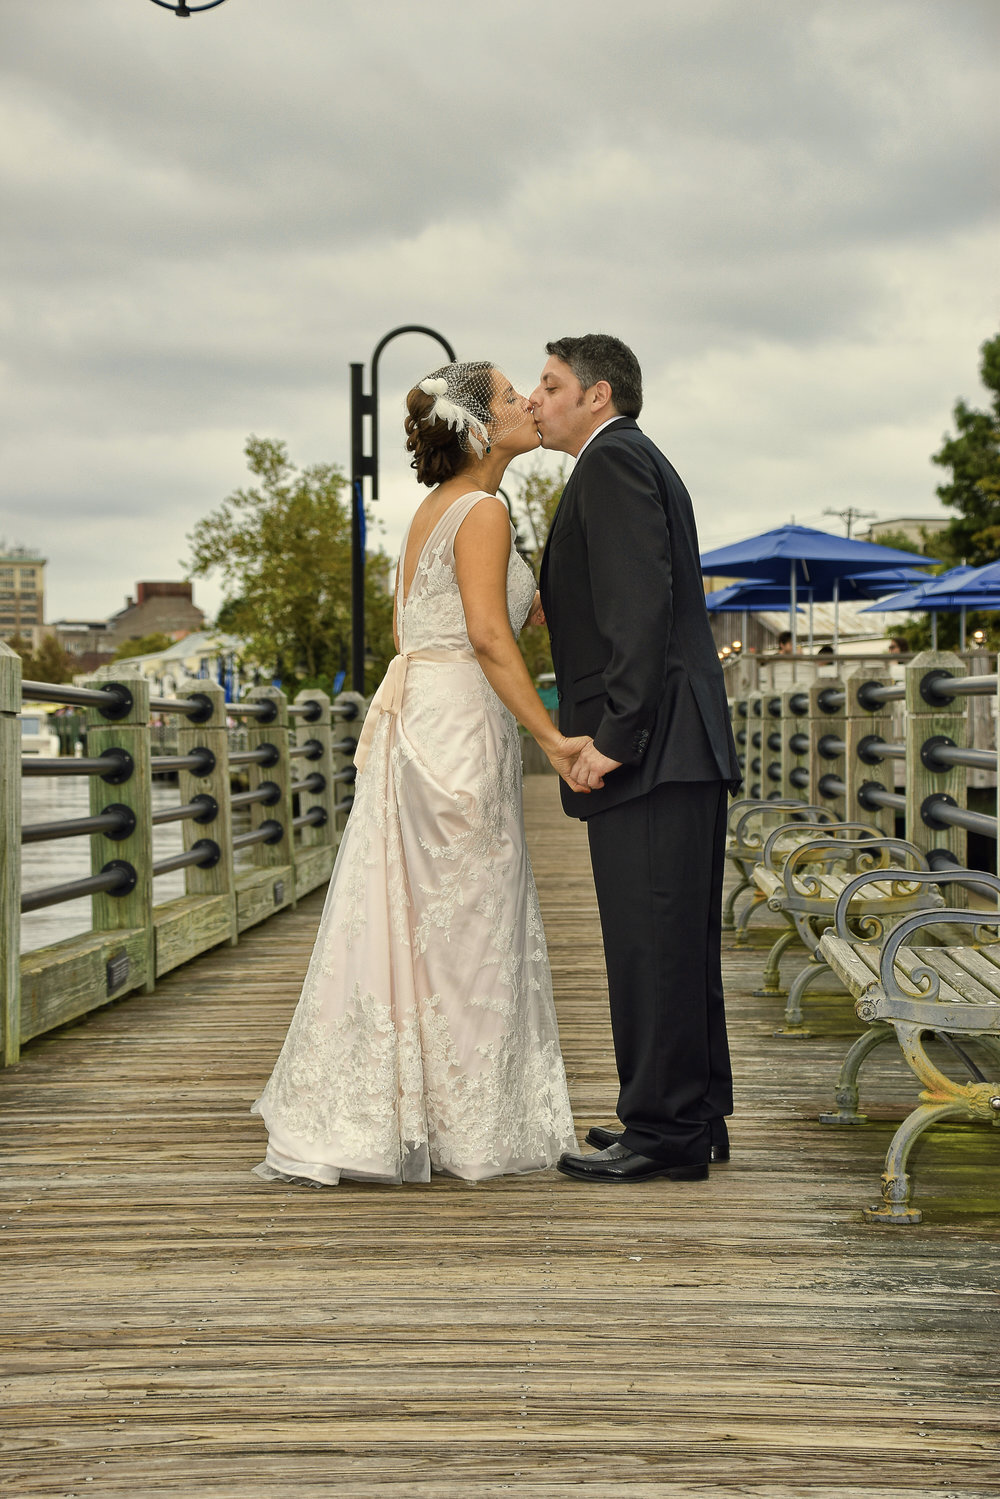 Riverwalk kiss.